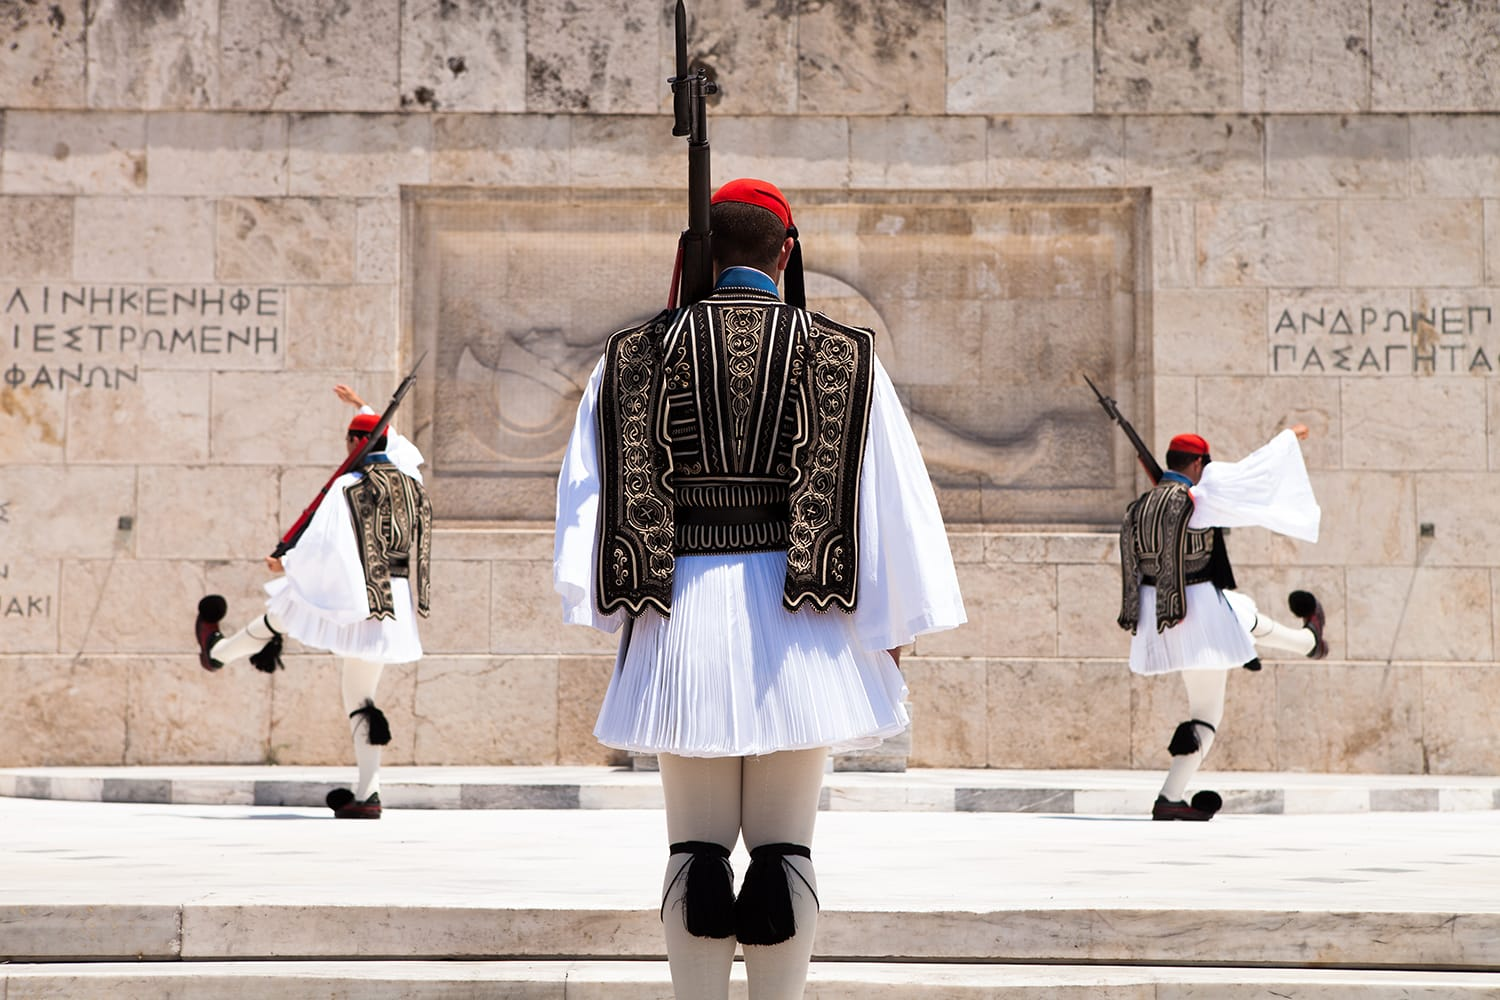 The Changing of the Guard ceremony takes place in front of the Greek Parliament Building in Athens, Greece.